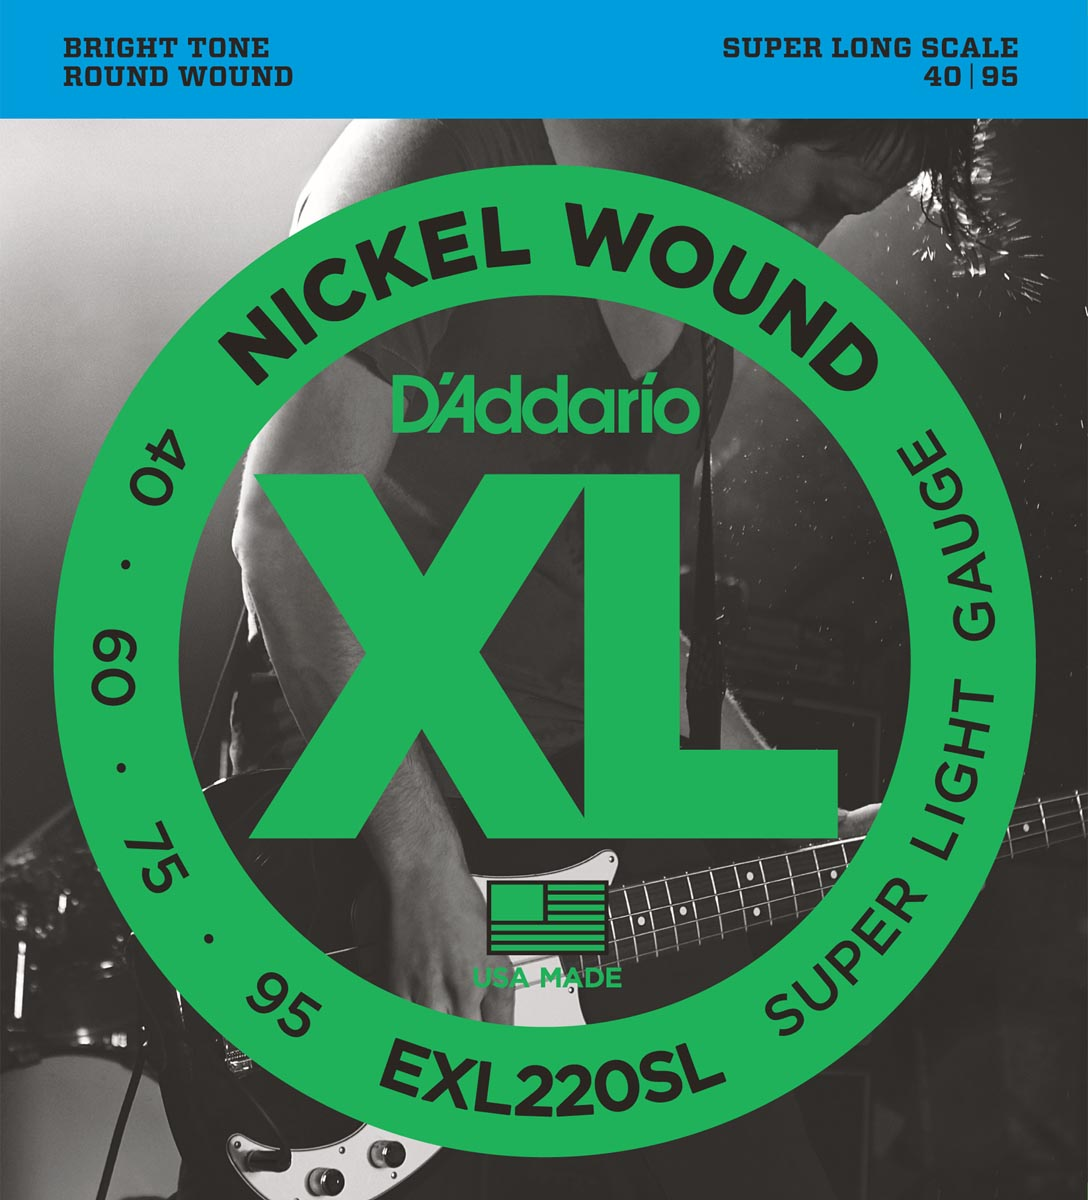 DADDARIO EXL220SL SUPER LONG SCALE [40-95]